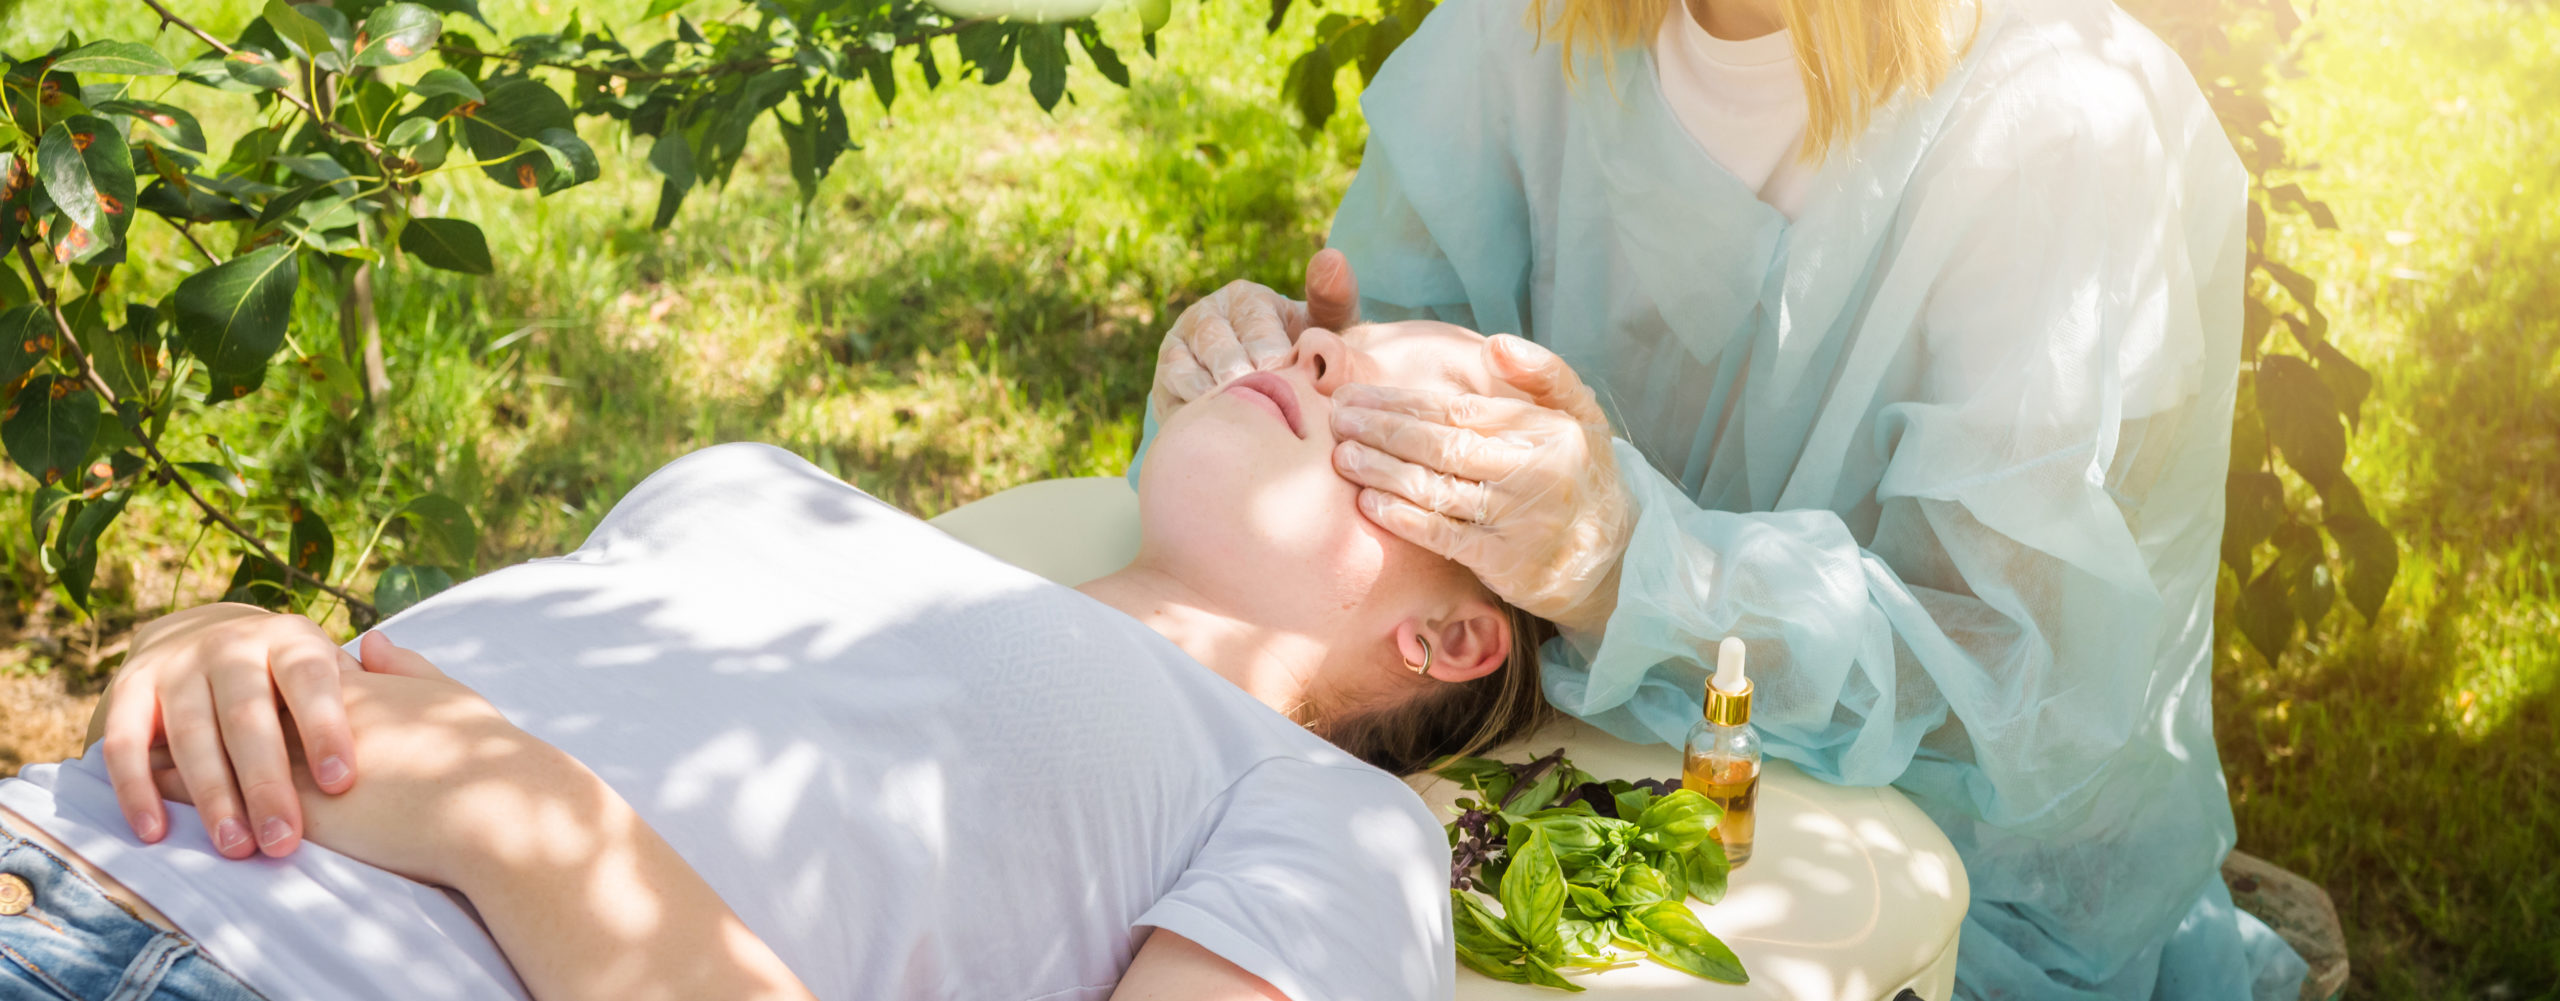 Cometologist massage therapist takes care of the skin of a girl in nature with natural cosmetics, oils for skin care, massage from natural ingredients, herbs, natural cosmetics